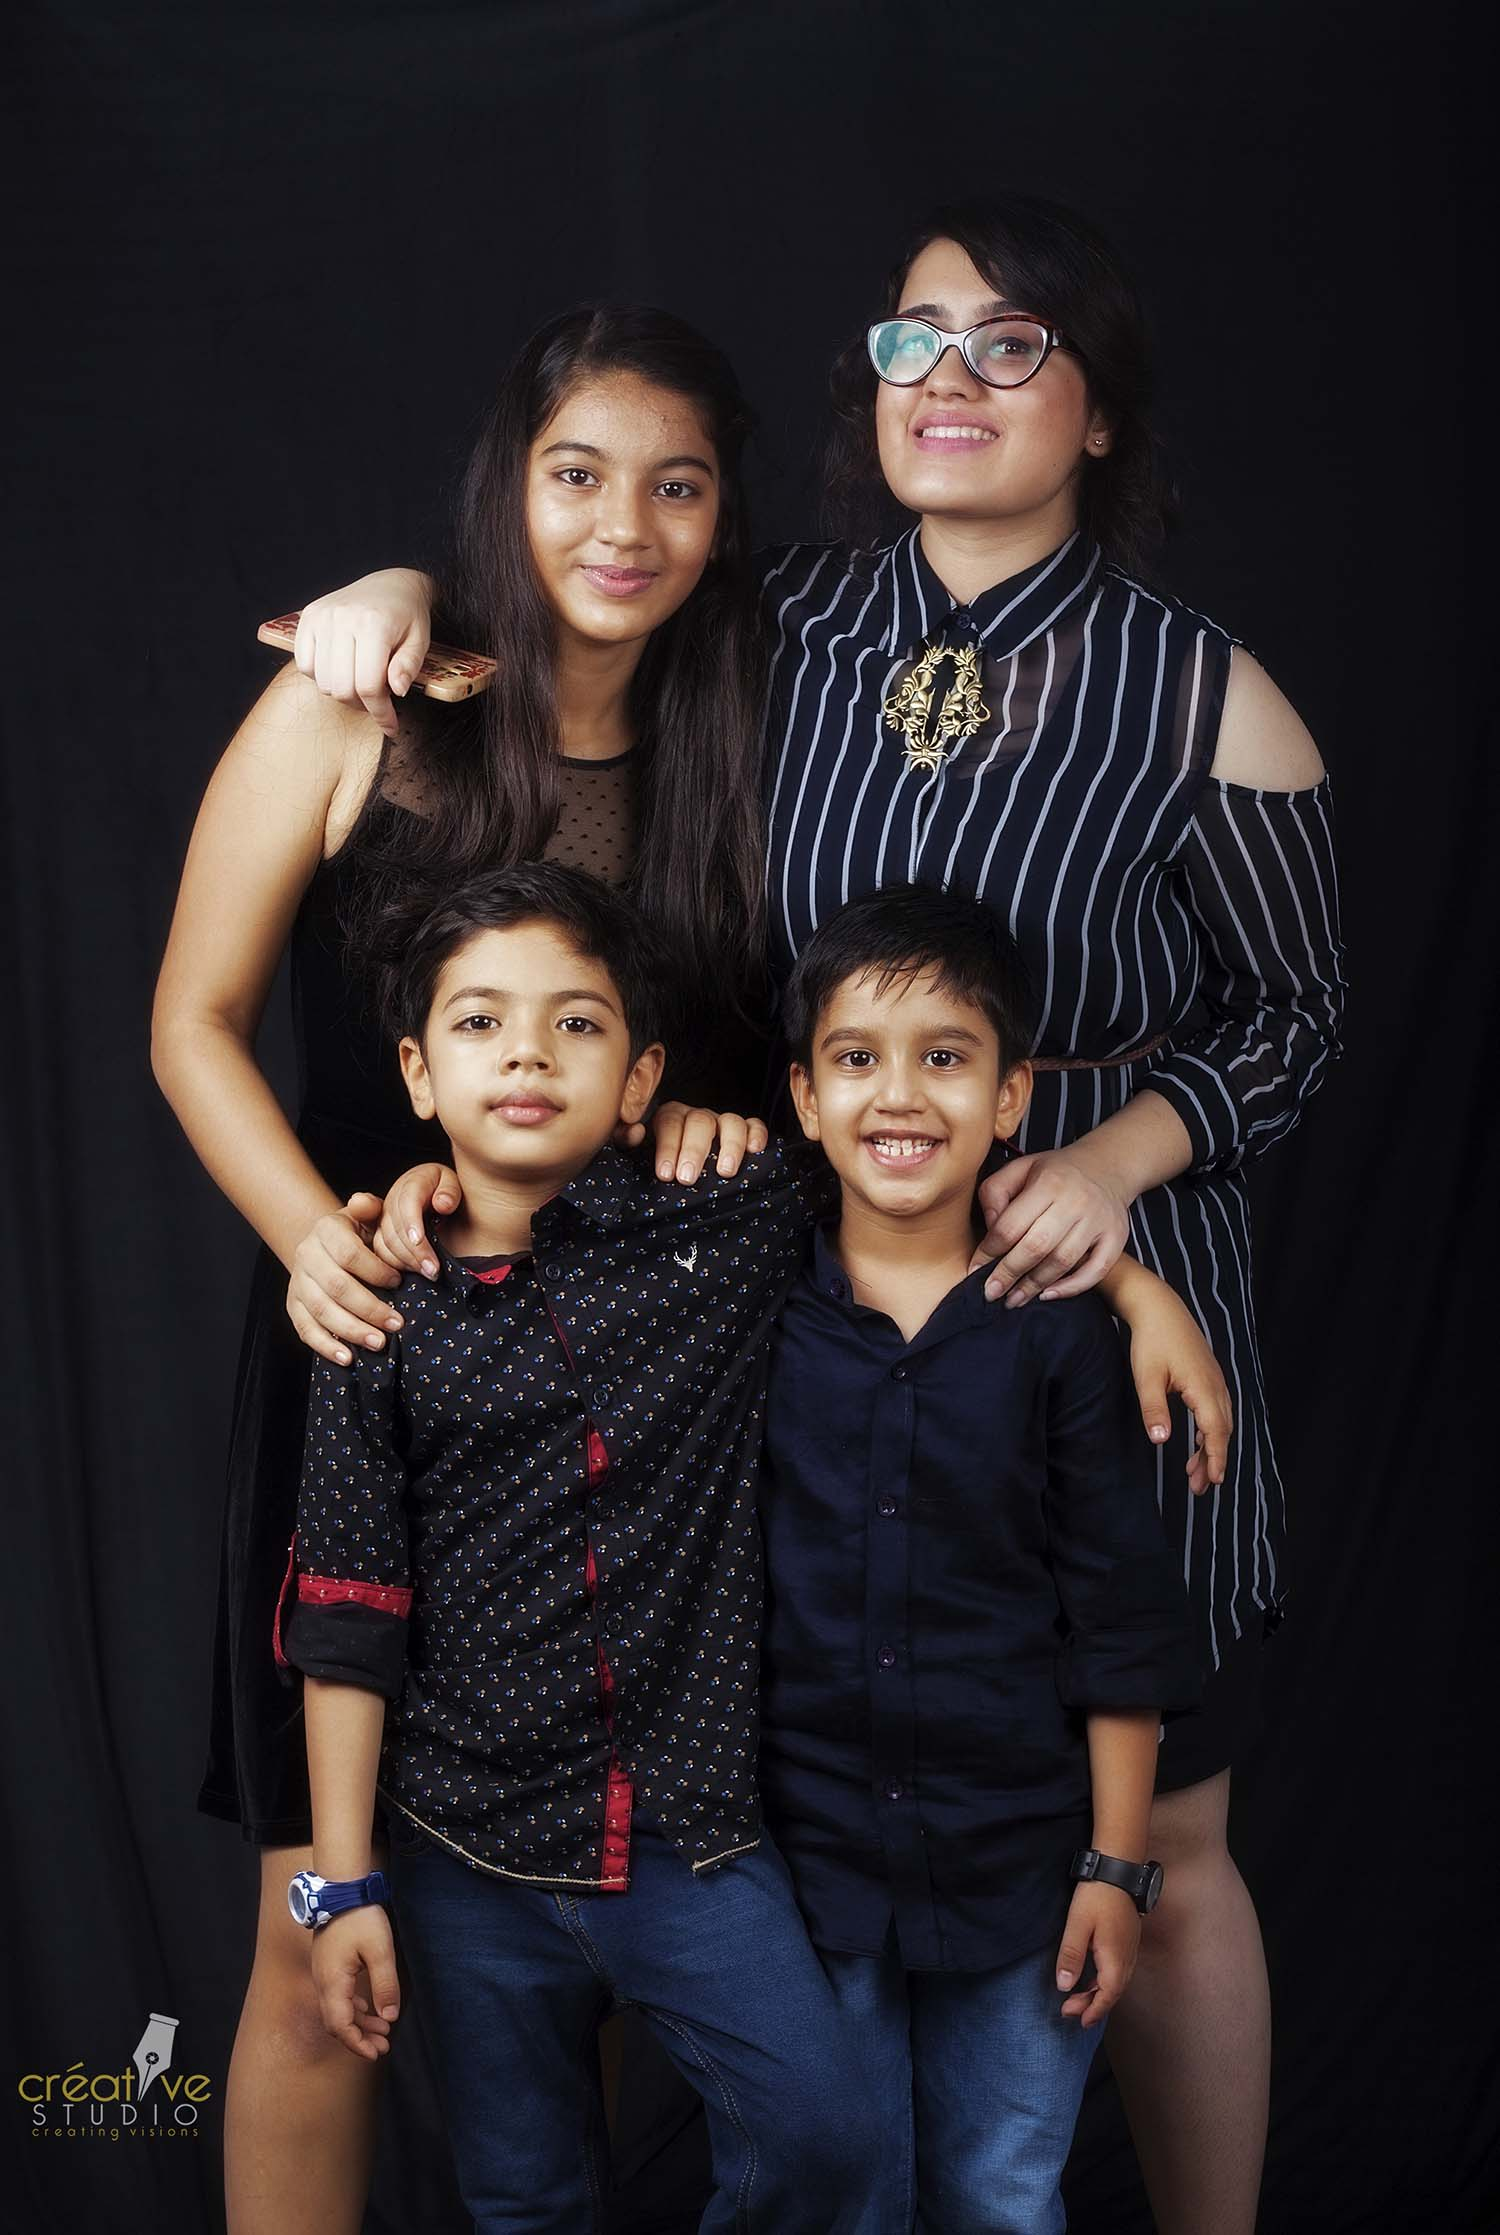 Family n Frends 4 - Family & Friend Photography Shoot